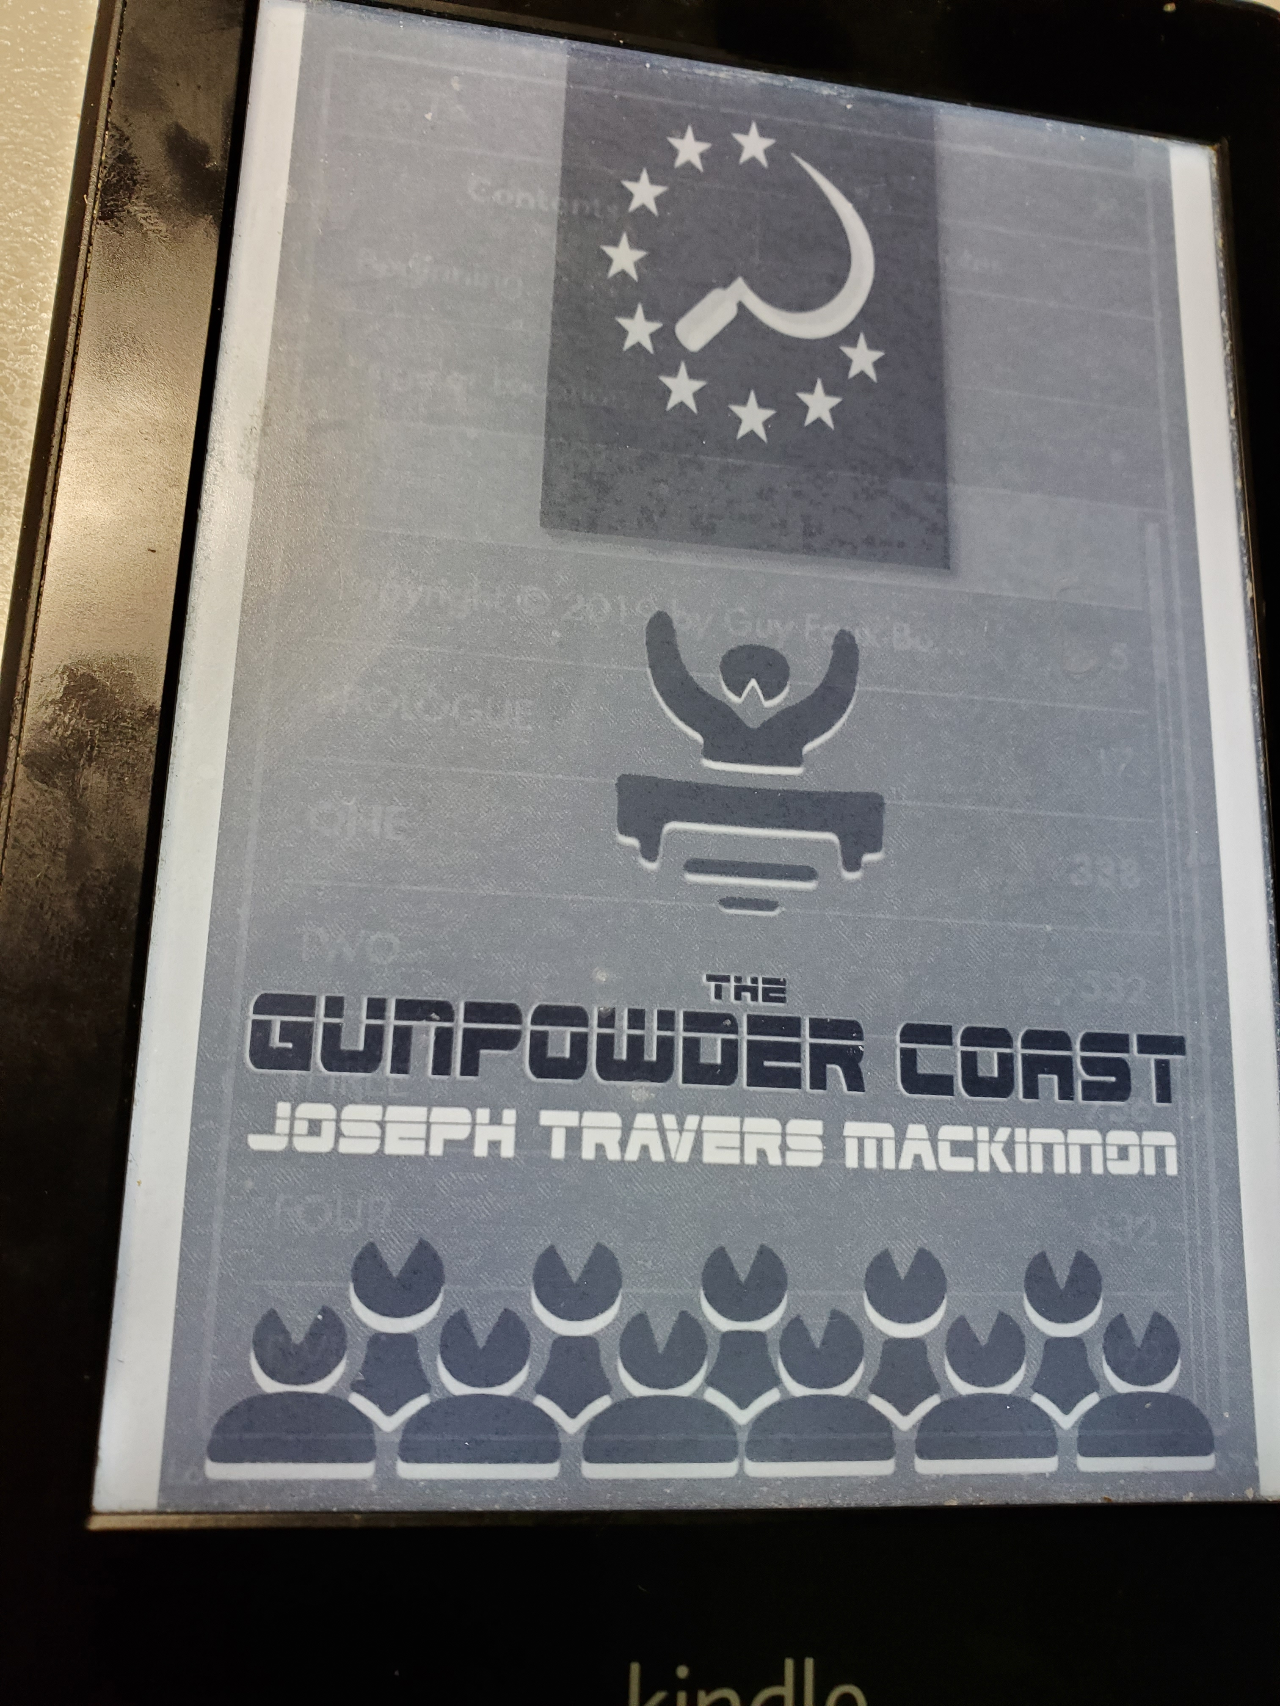 The Gunpowder Coast